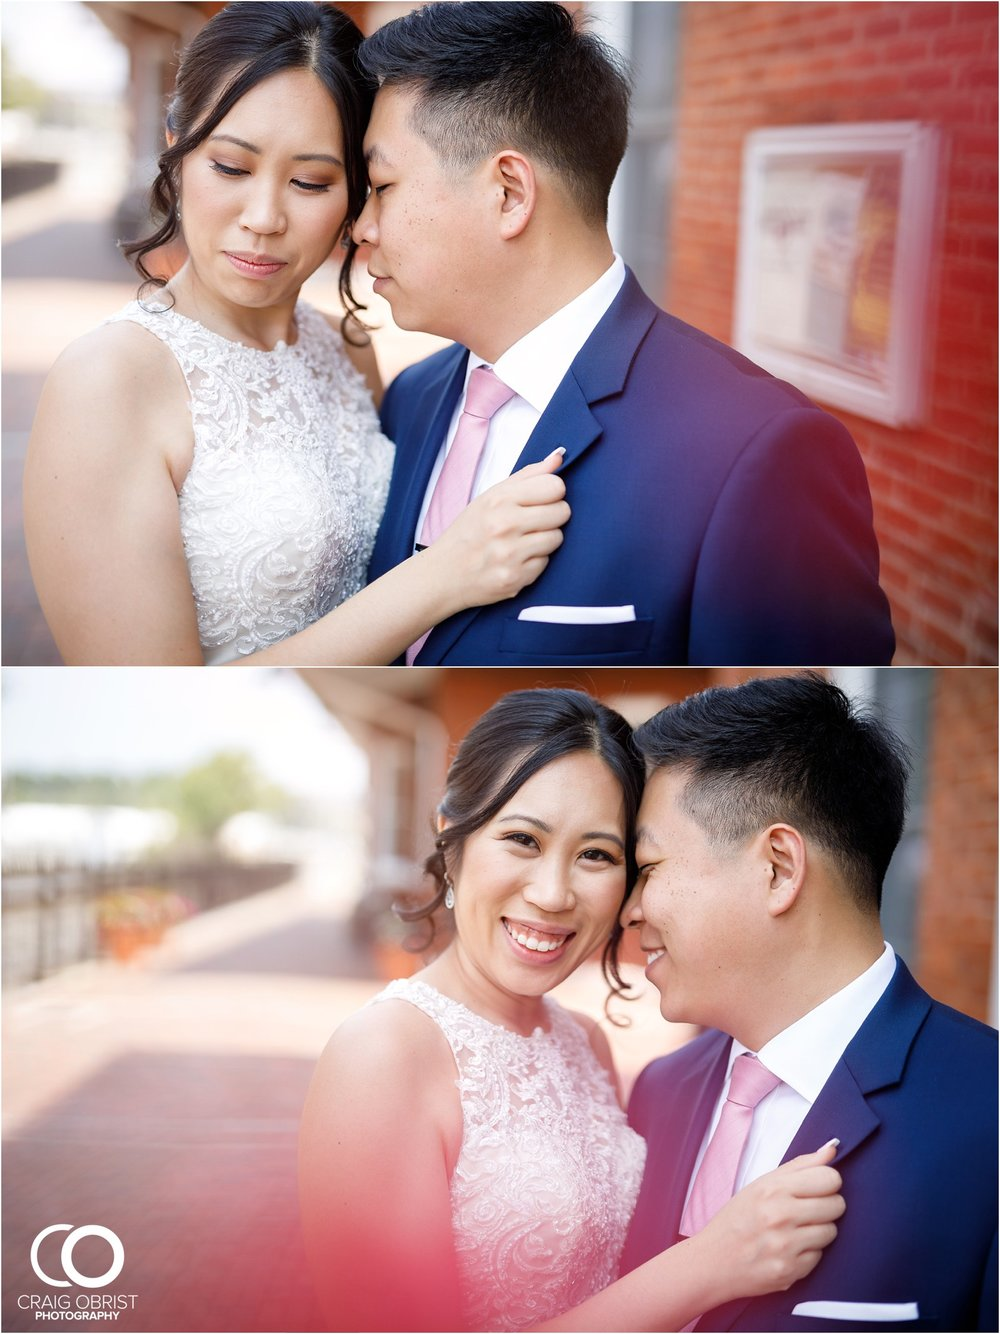 The Brickyard Holy Spirit Catholic Church Marietta Square Wedding Portraits_0015.jpg